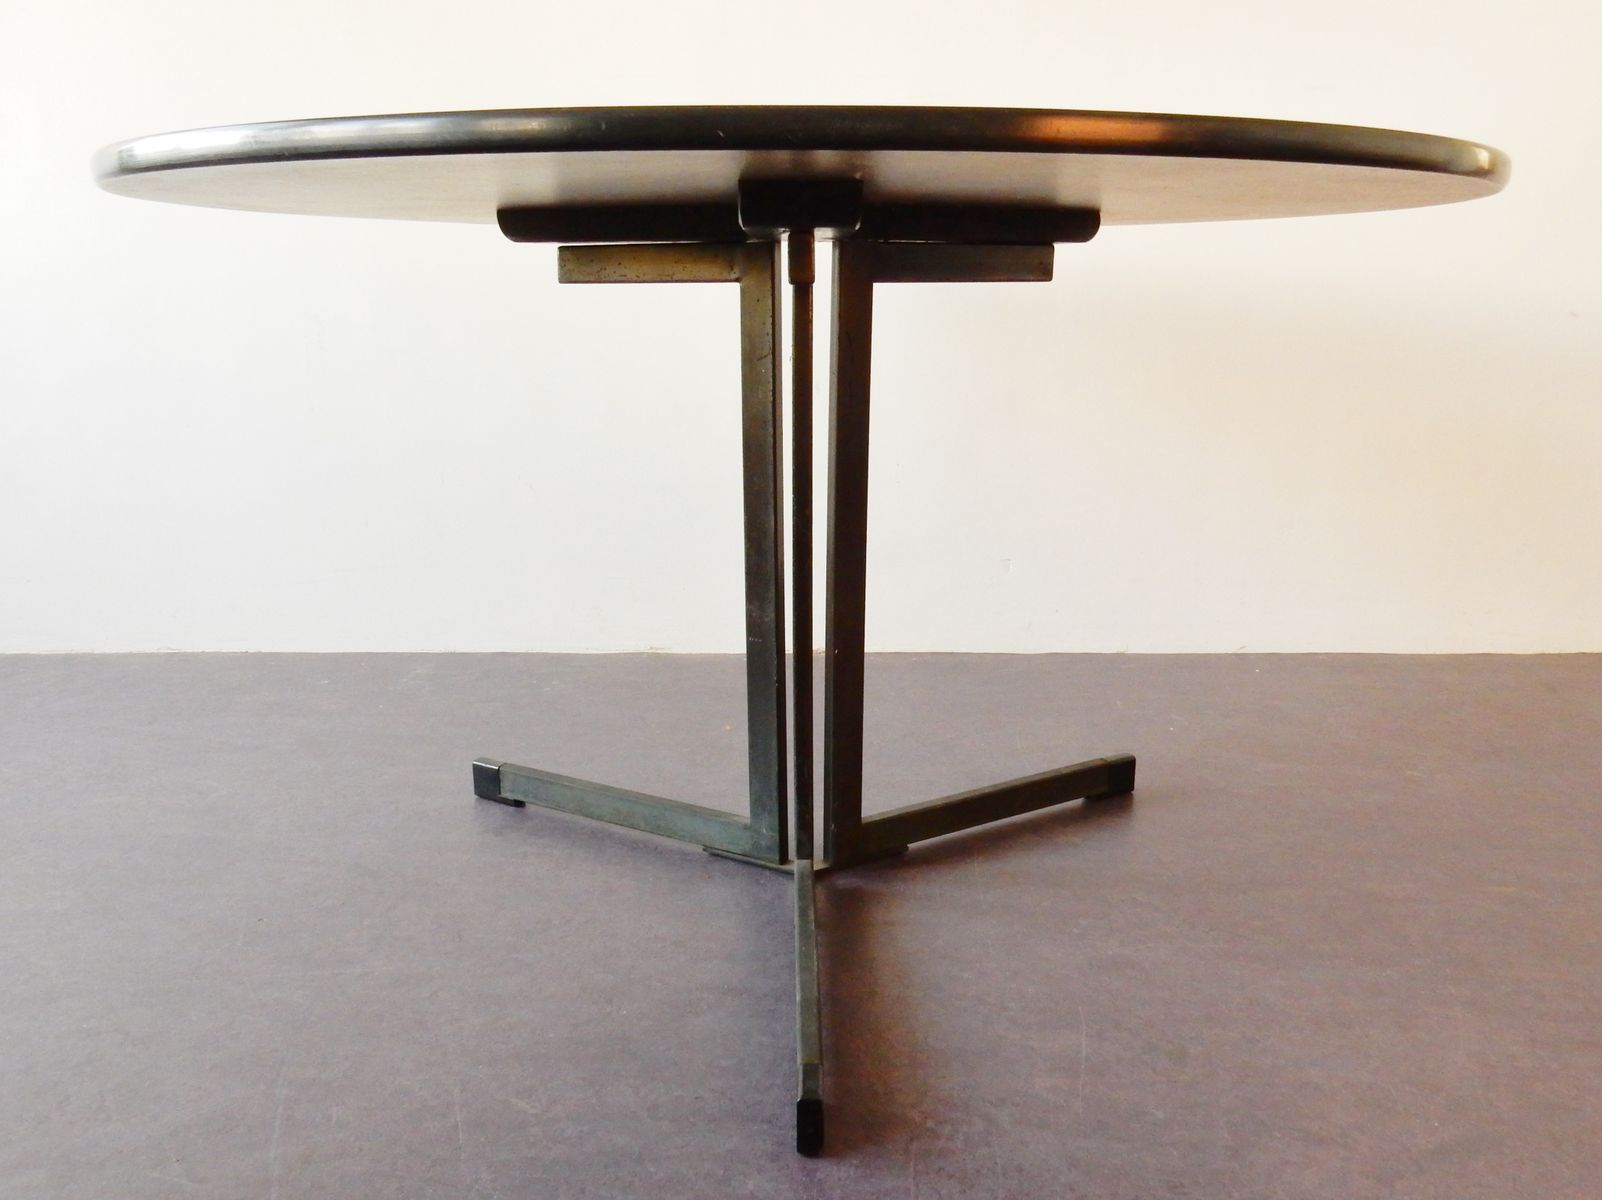 vintage model ap103 round dining table by hein salomonson for ap